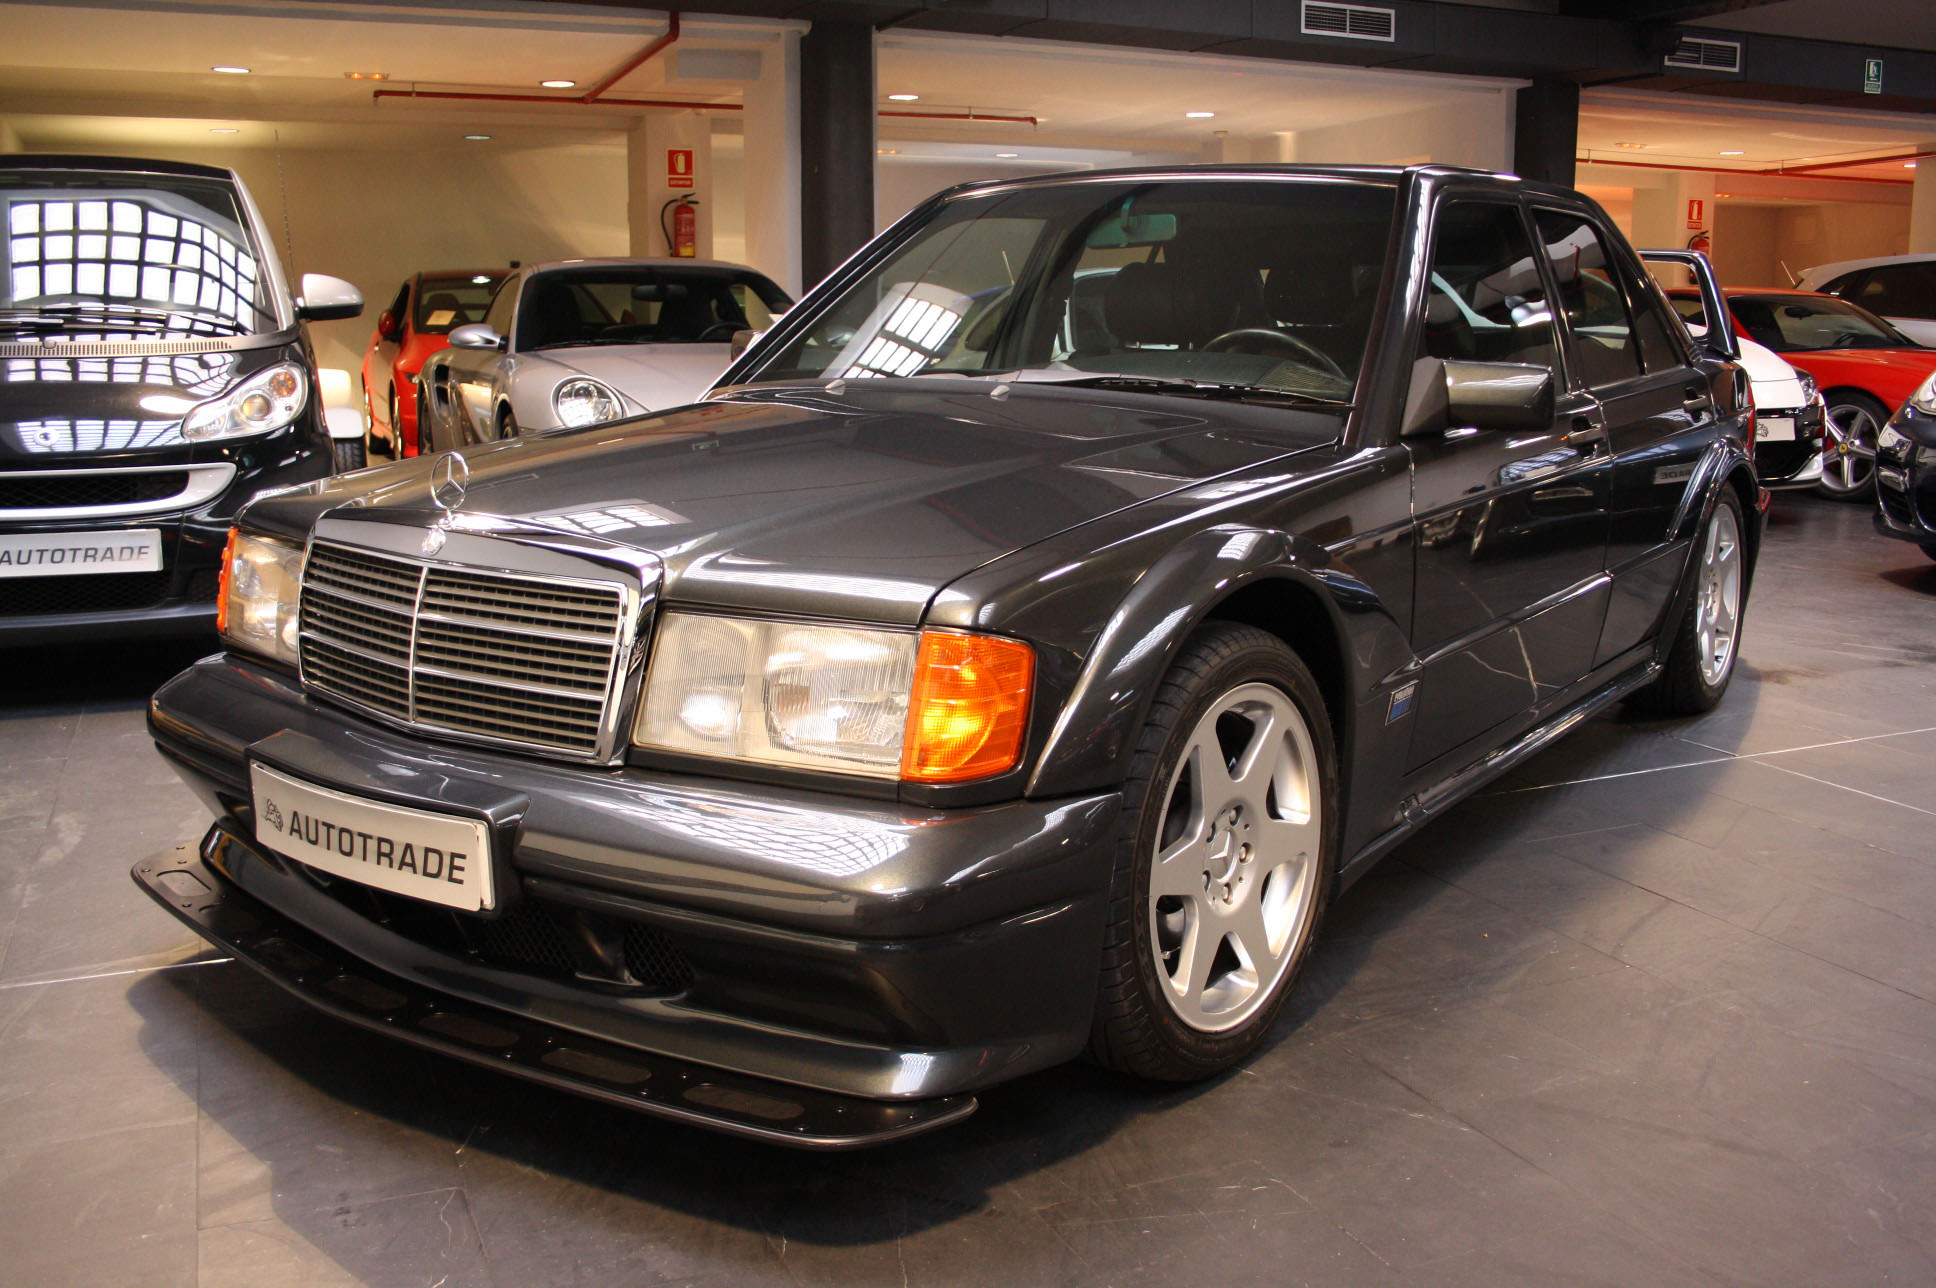 Mercedes Benz 190 E 2.5-16 Evolution II